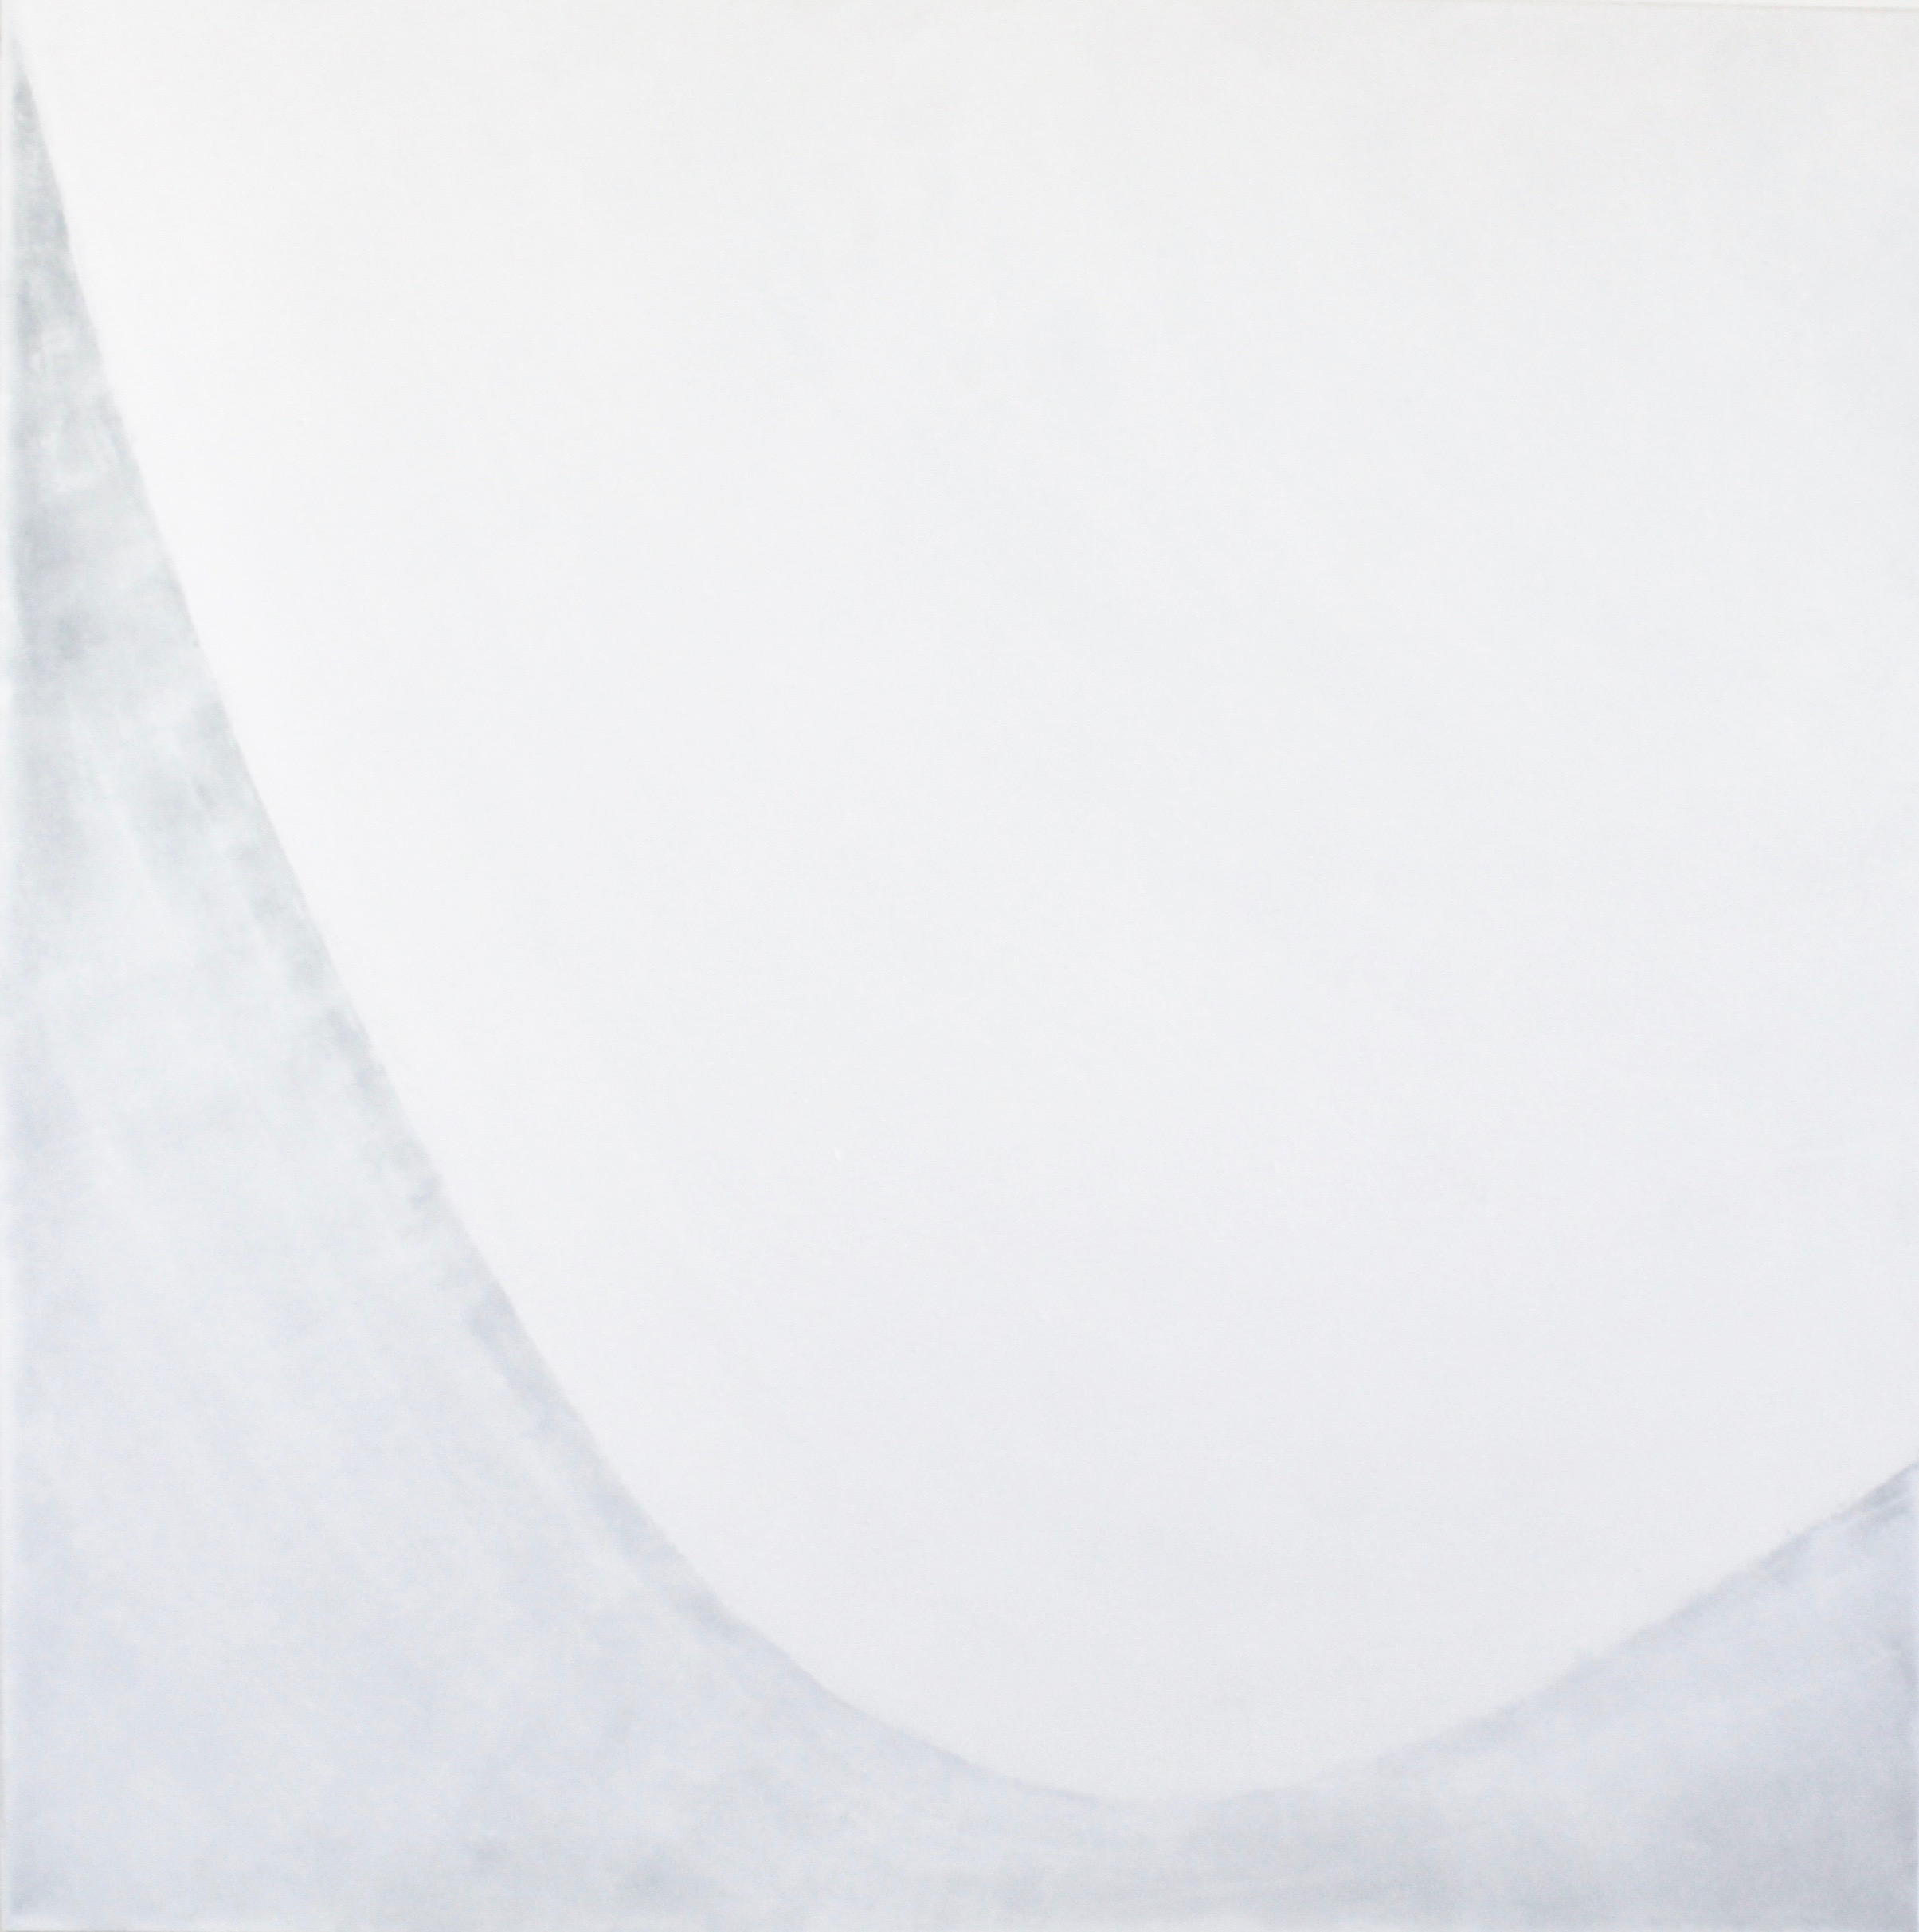 SNOW at sea level - 1200mm x 1200mm.Acrylic on canvas.